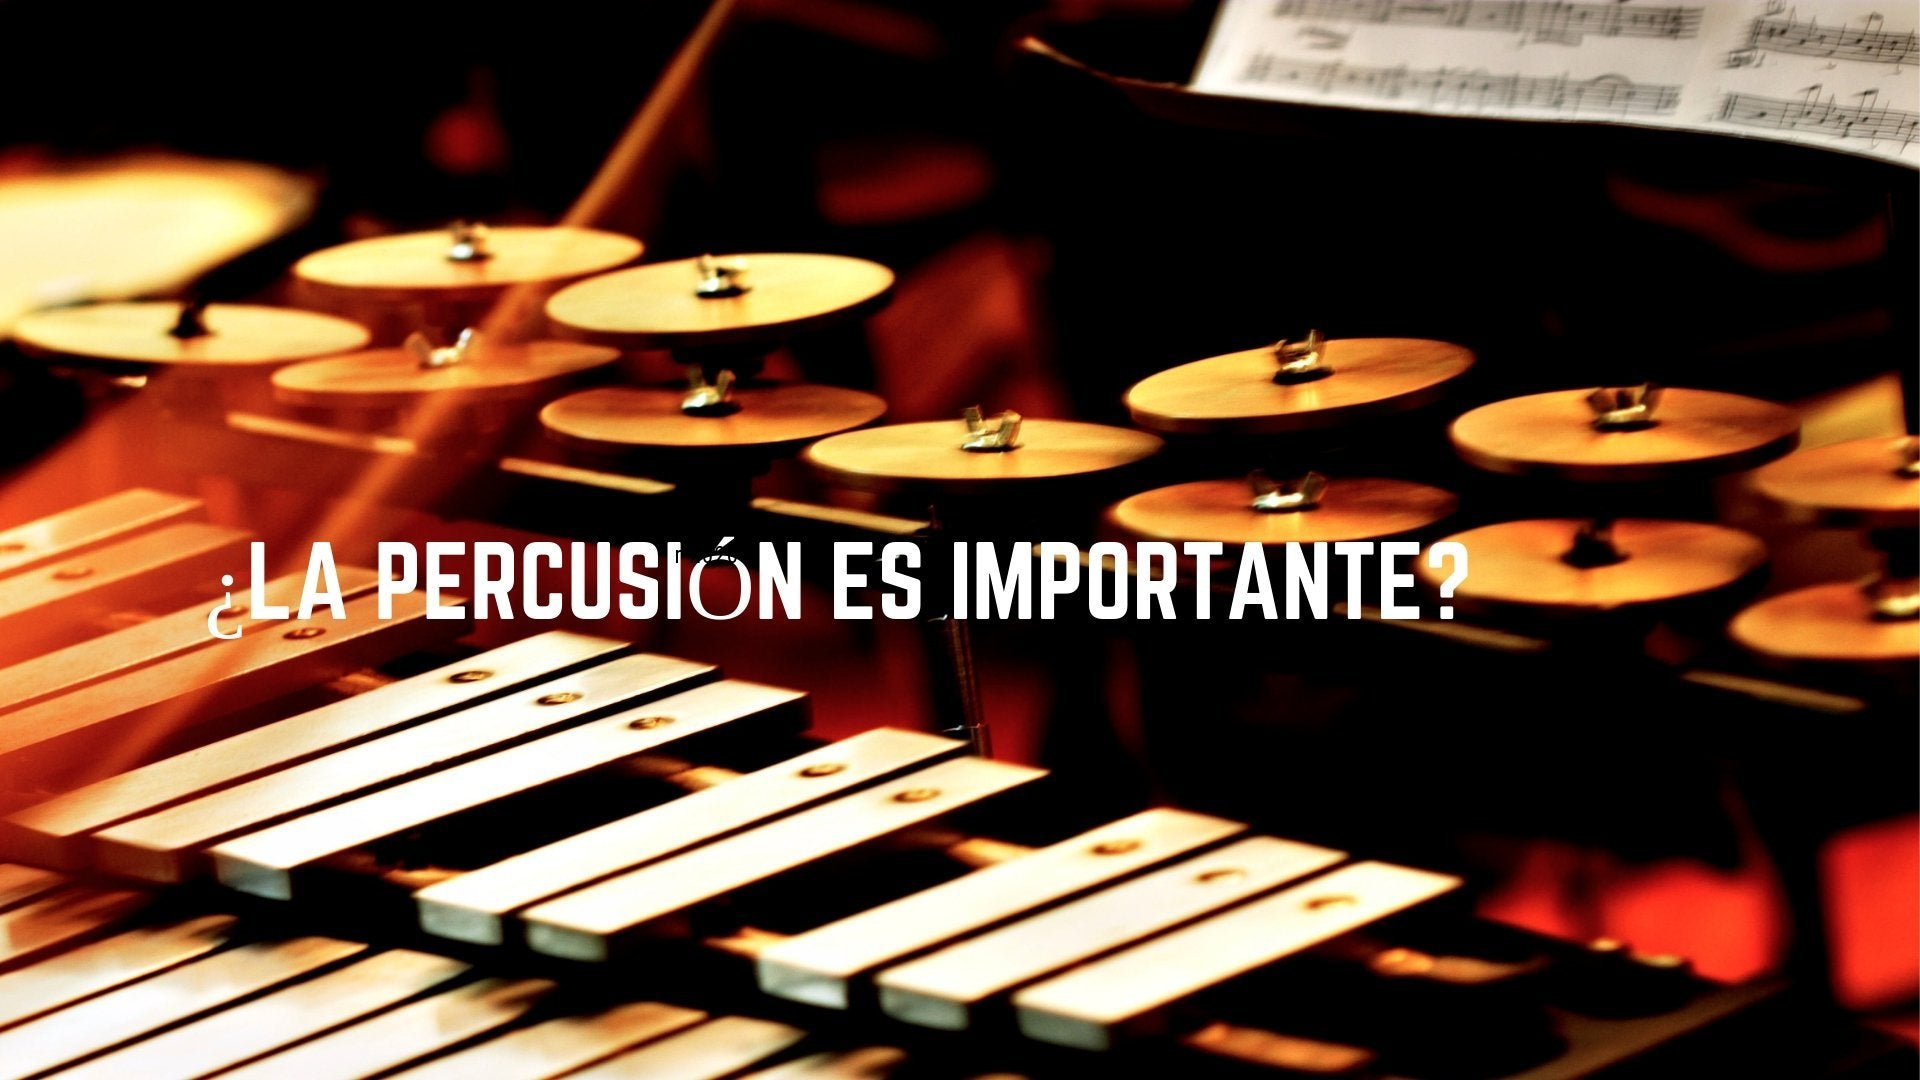 Why is percussion important?